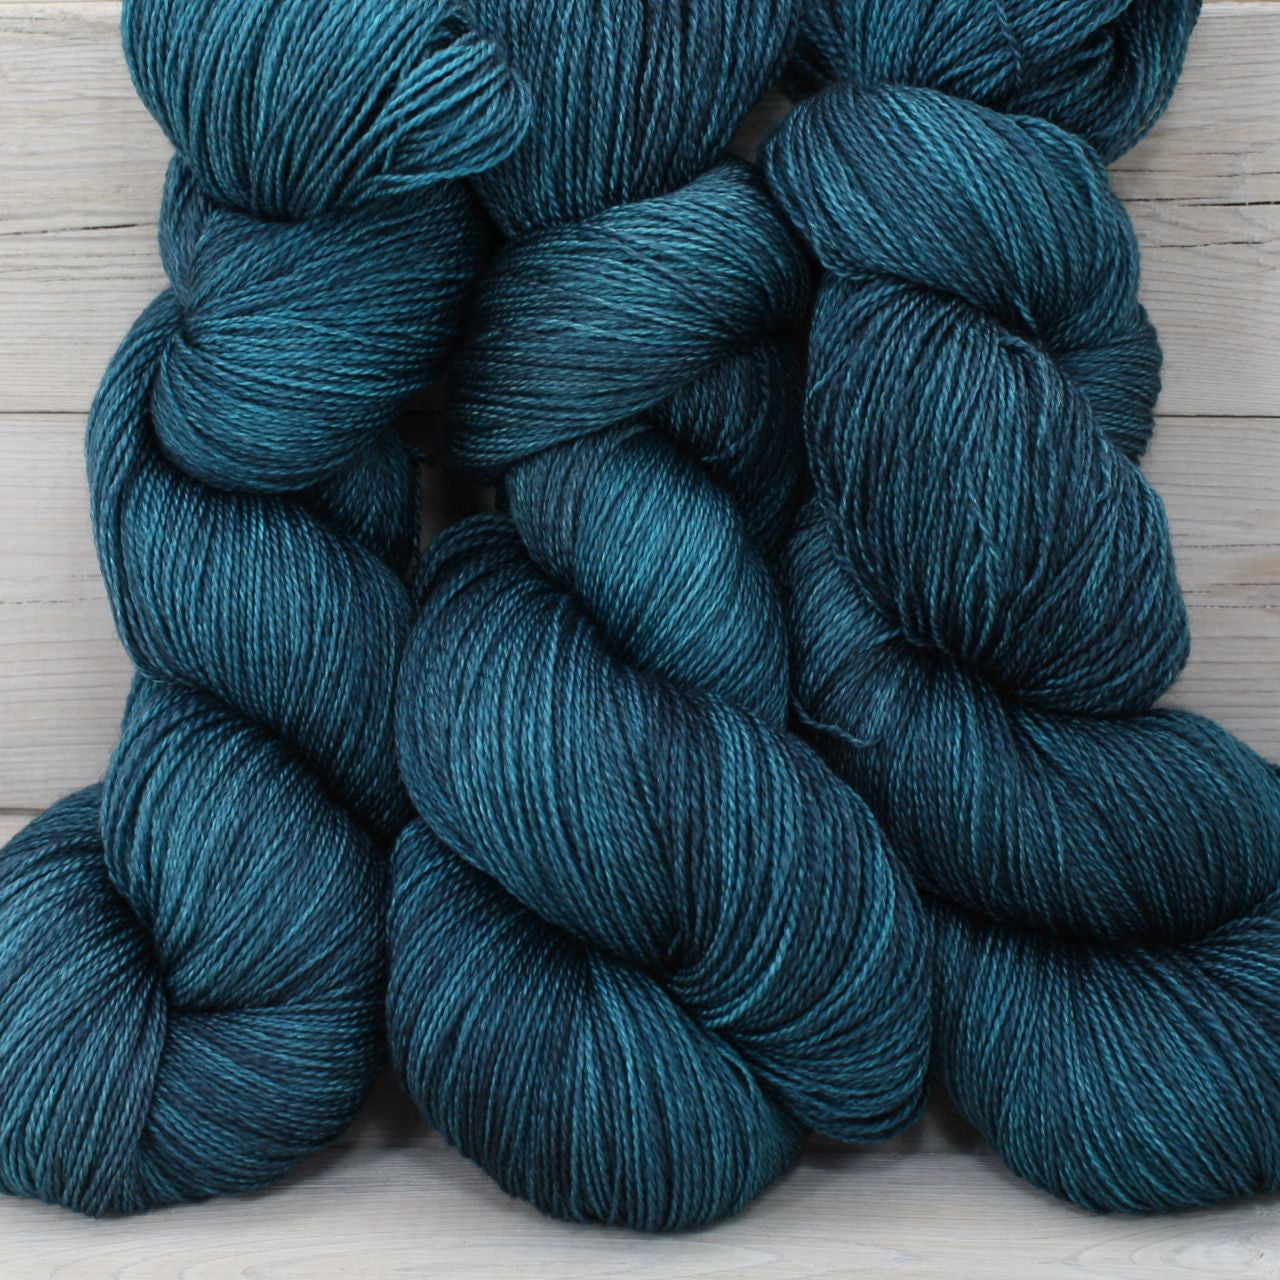 Starbright Yarn | Colorway: Techno